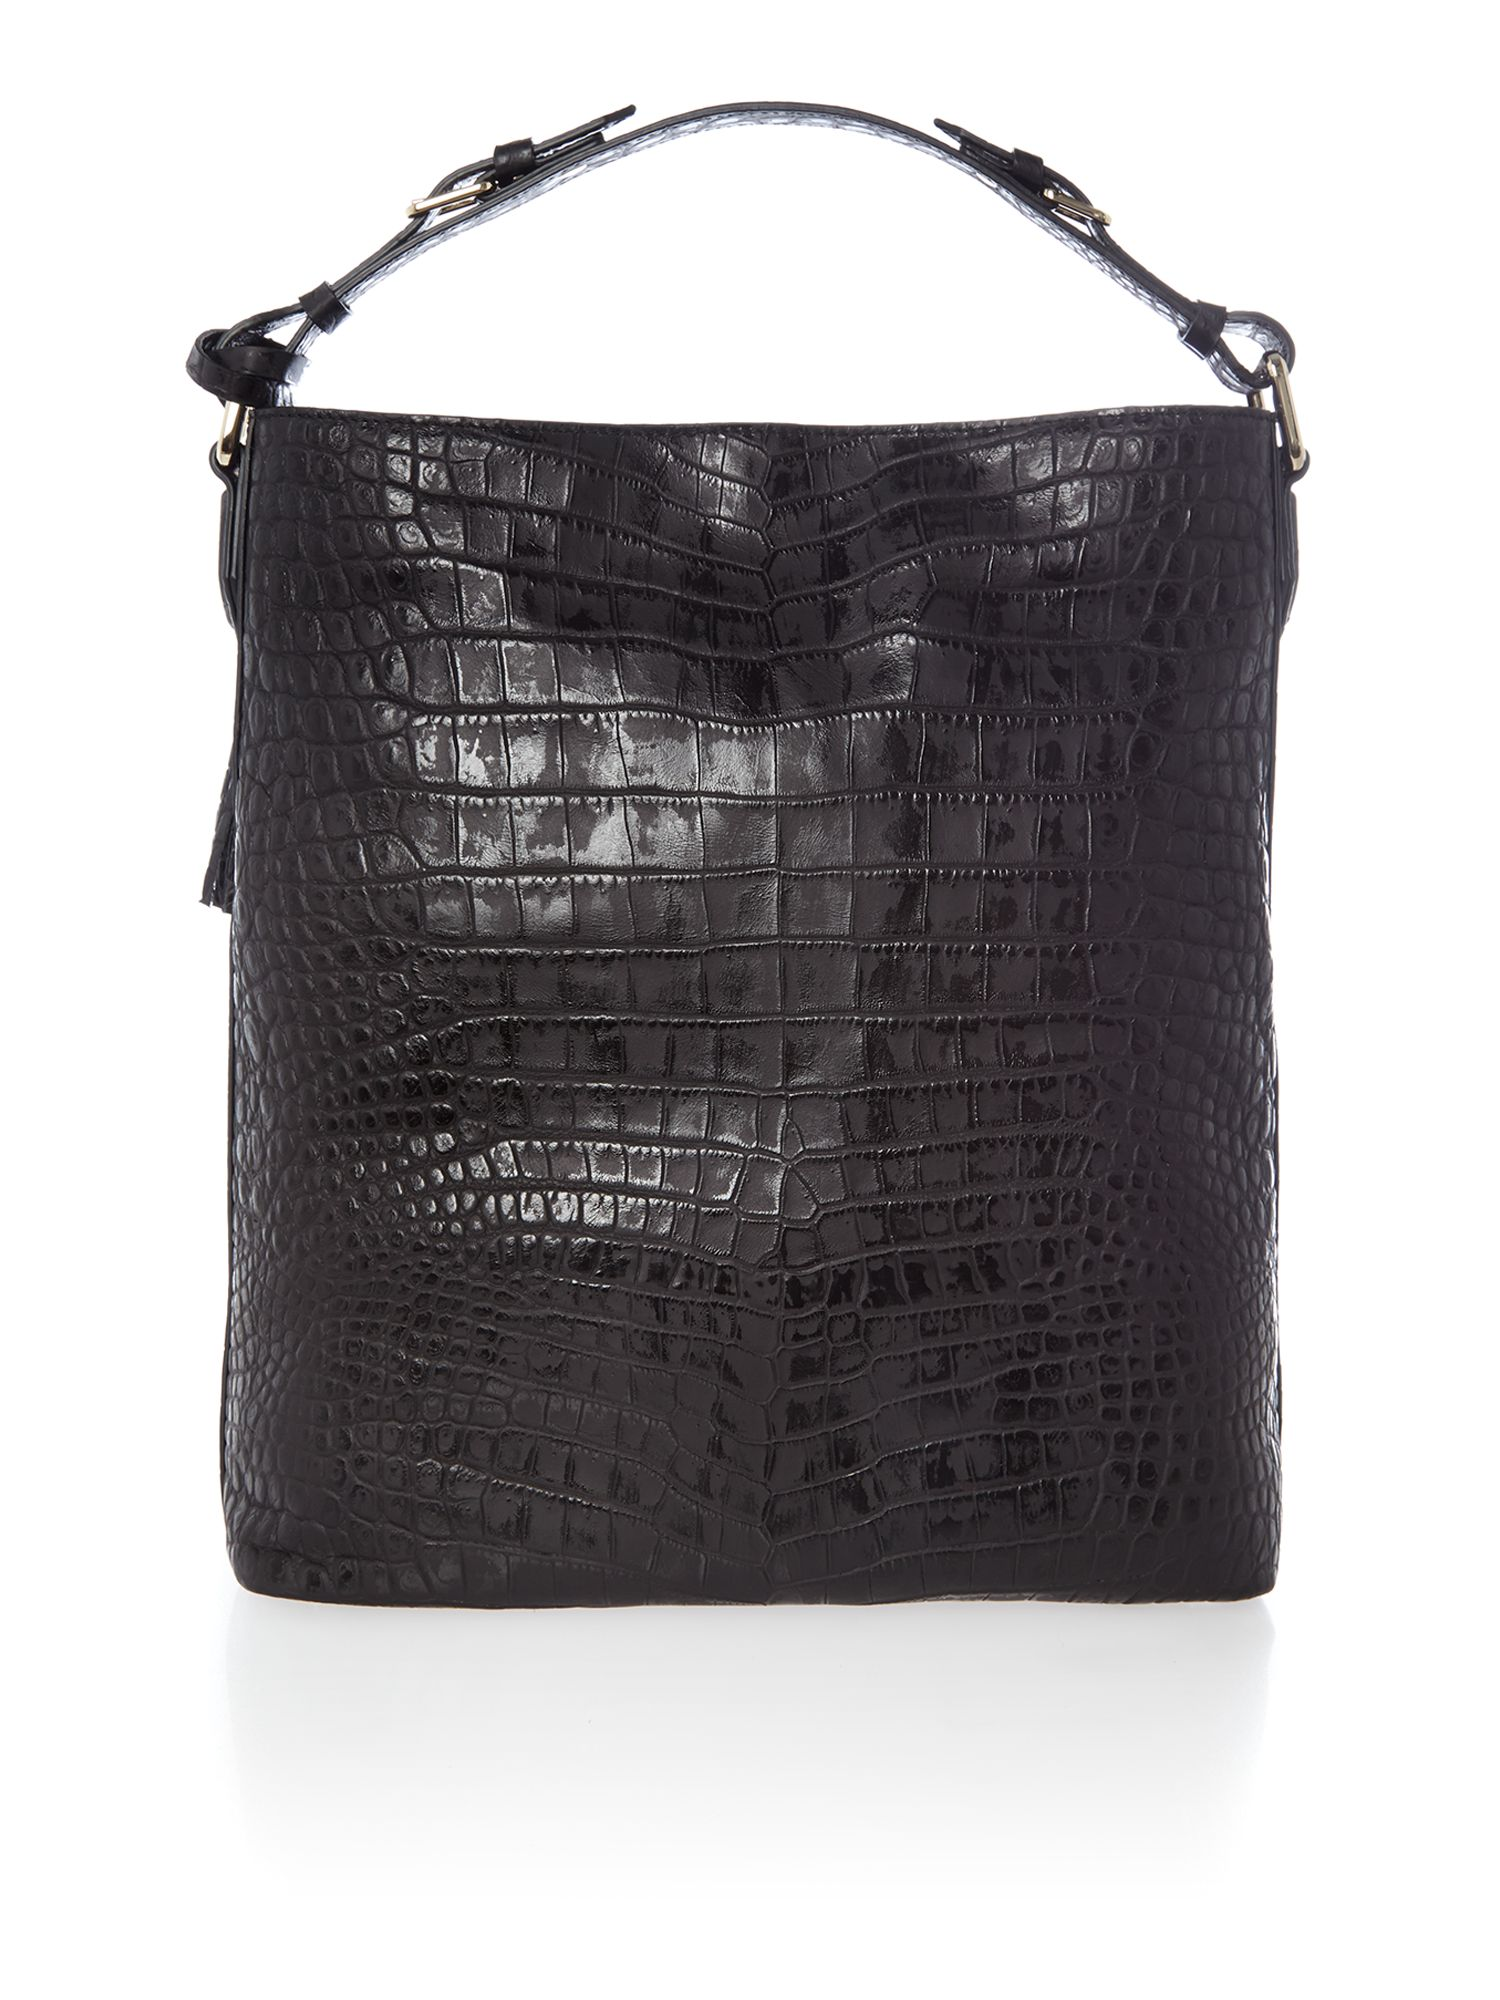 Black croc hobo bag